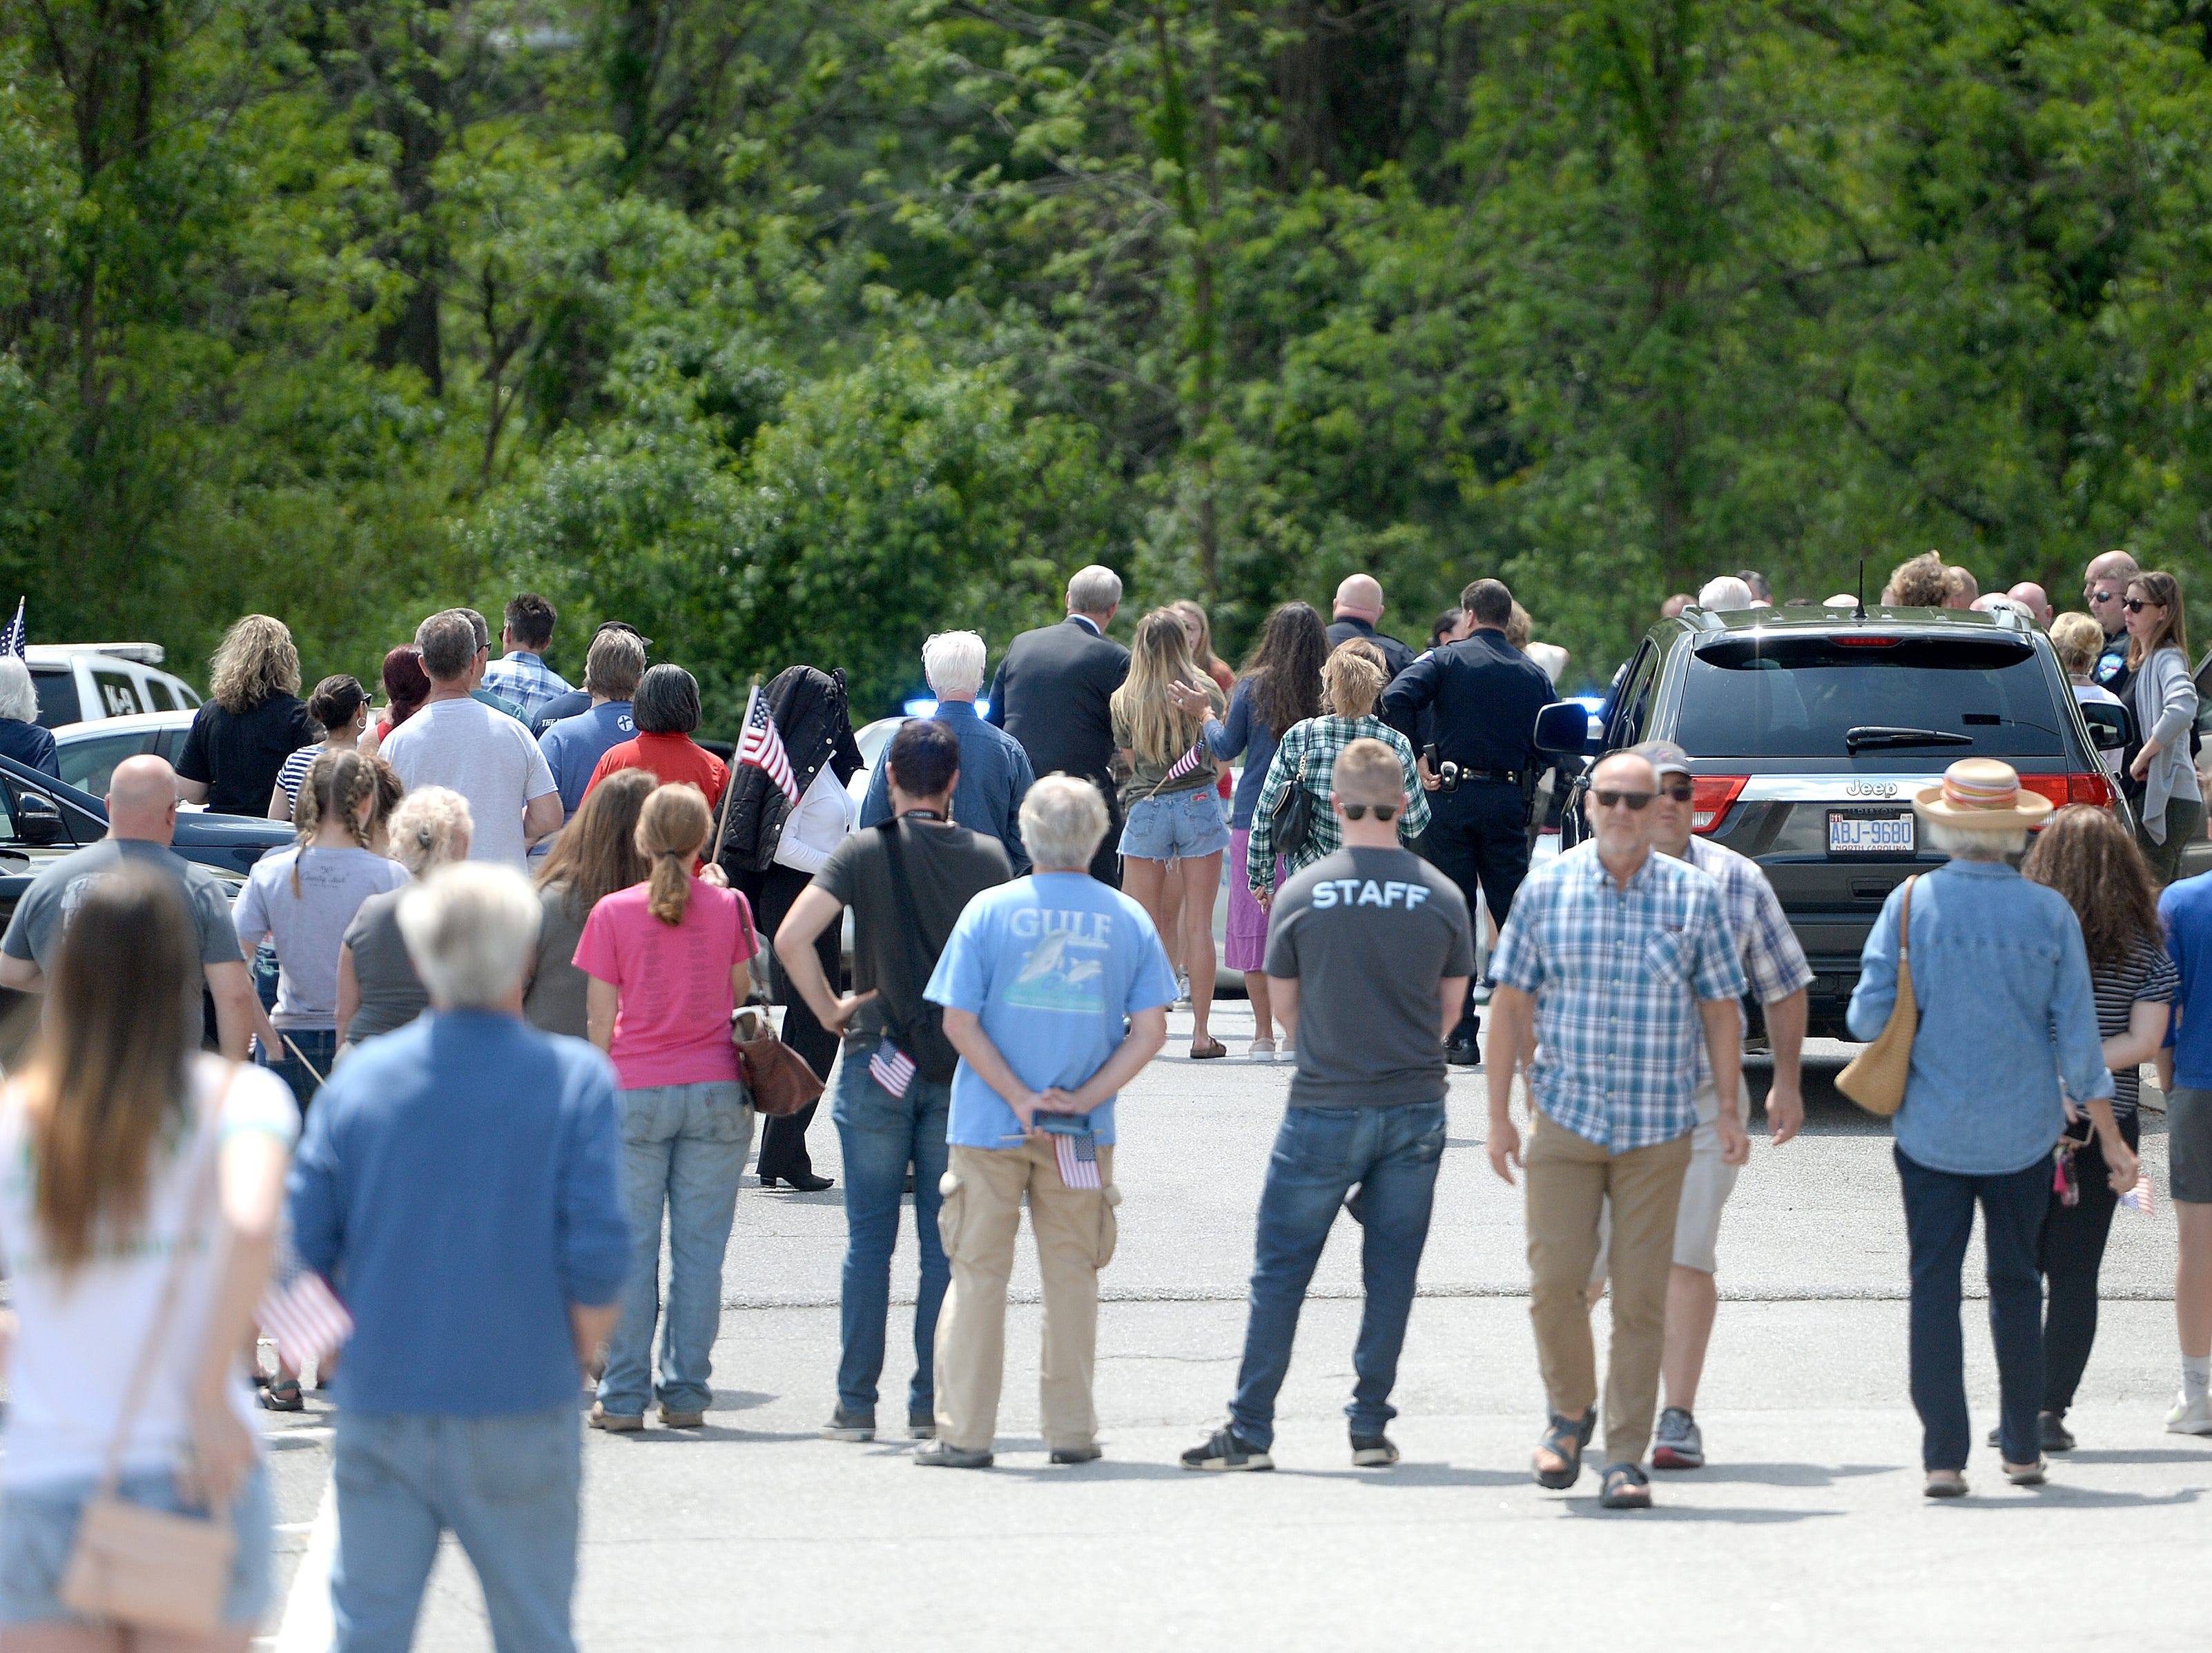 UNC Charlotte shooting victim Riley Howell's body was welcomed to Wells Funeral Home in Waynesville with a hero's welcome on May 2, 2019. Police say that actions of the 21-year-old during the shooting cost him his life but saved the lives of others.